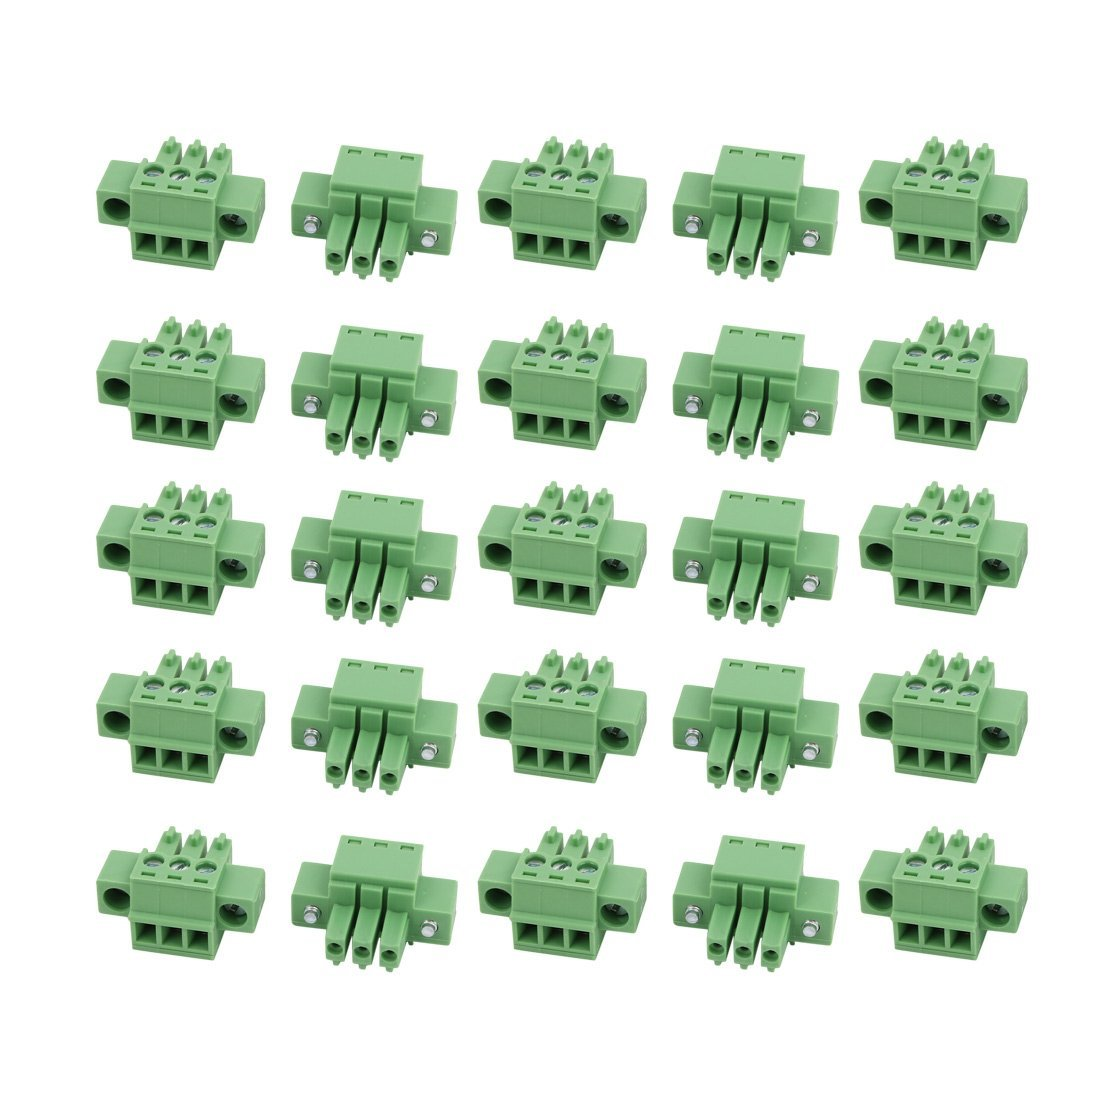 uxcell 25Pcs LC1M AC300V 8A 3.5mm Pitch 3P PCB Terminal Block Wire Connection